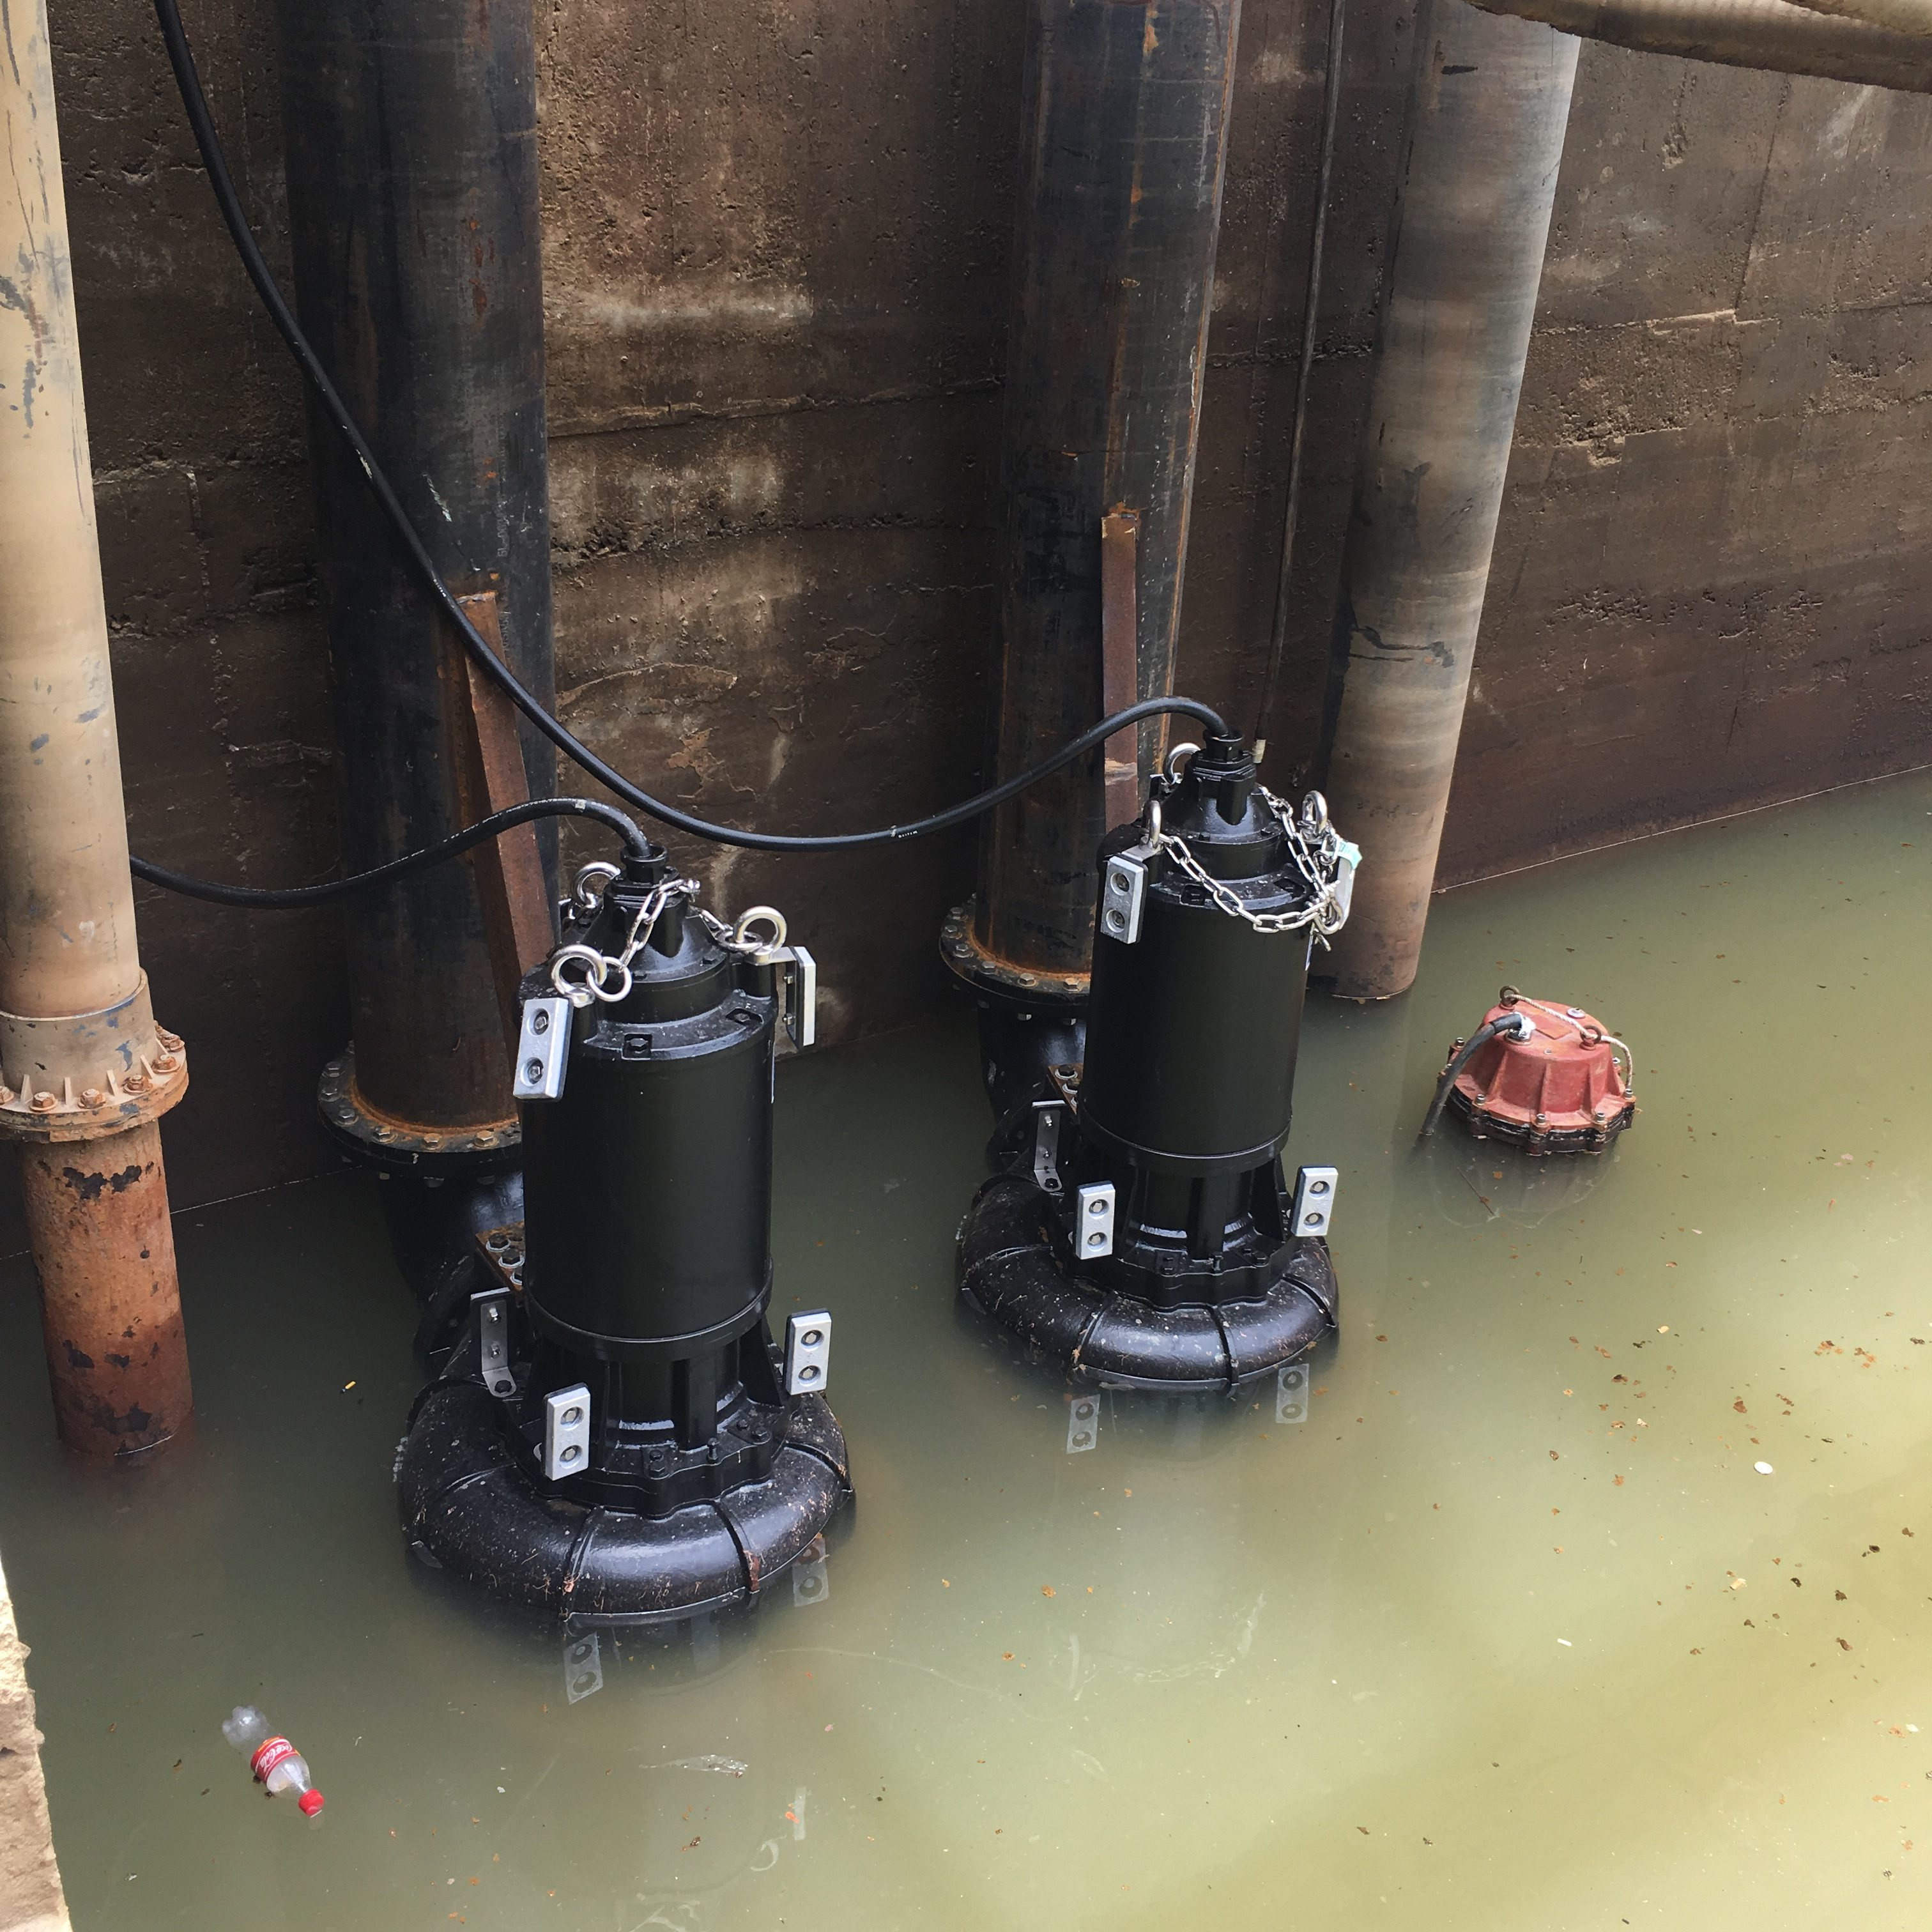 Installation of AF-1660 (45kW) HCP Submersible Pump in shipping yard.